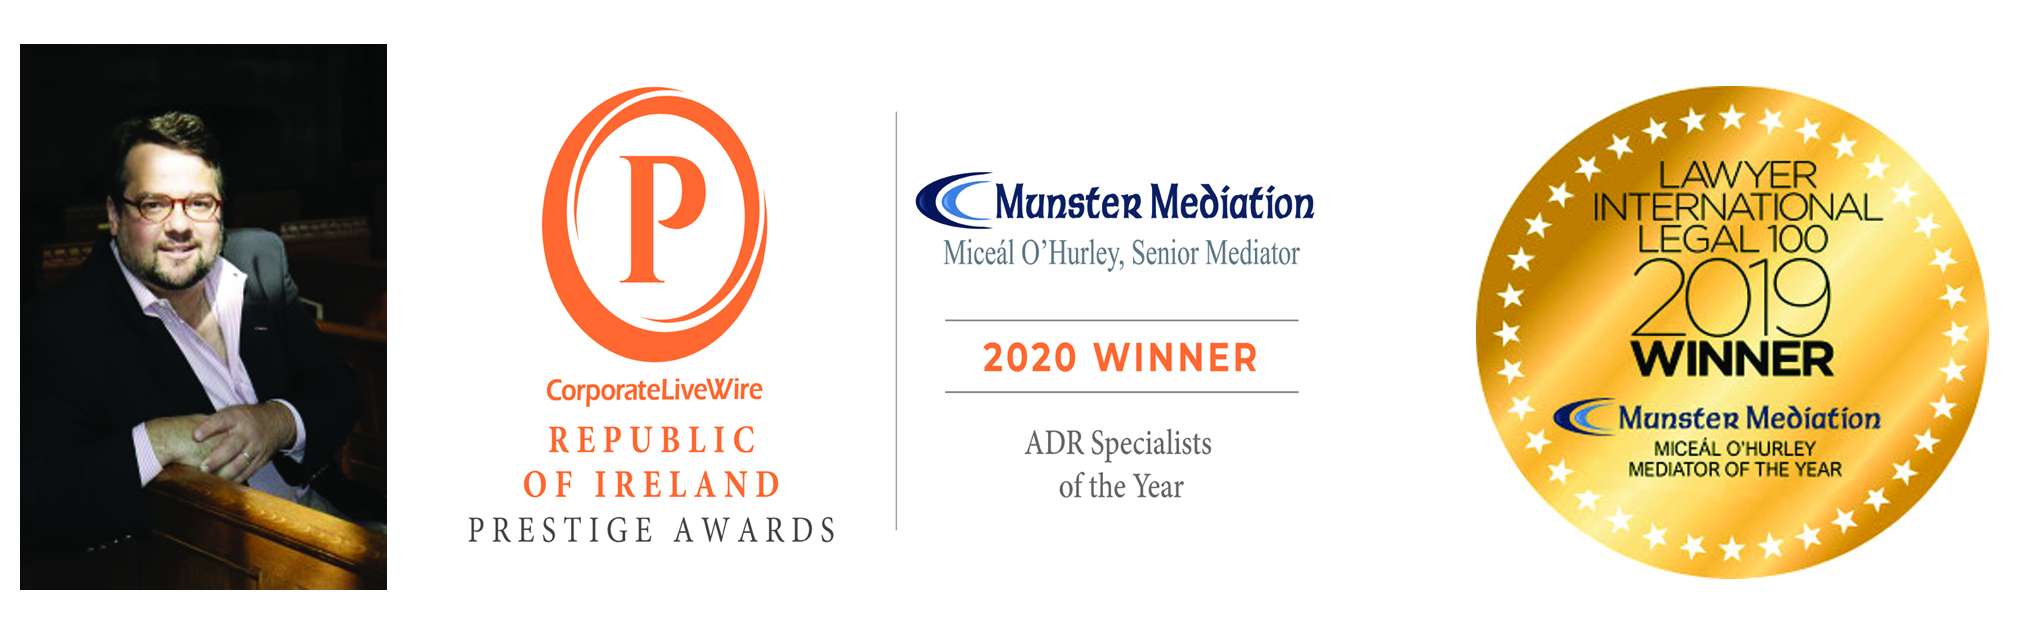 miceal-and-mediation-awards-for-wed